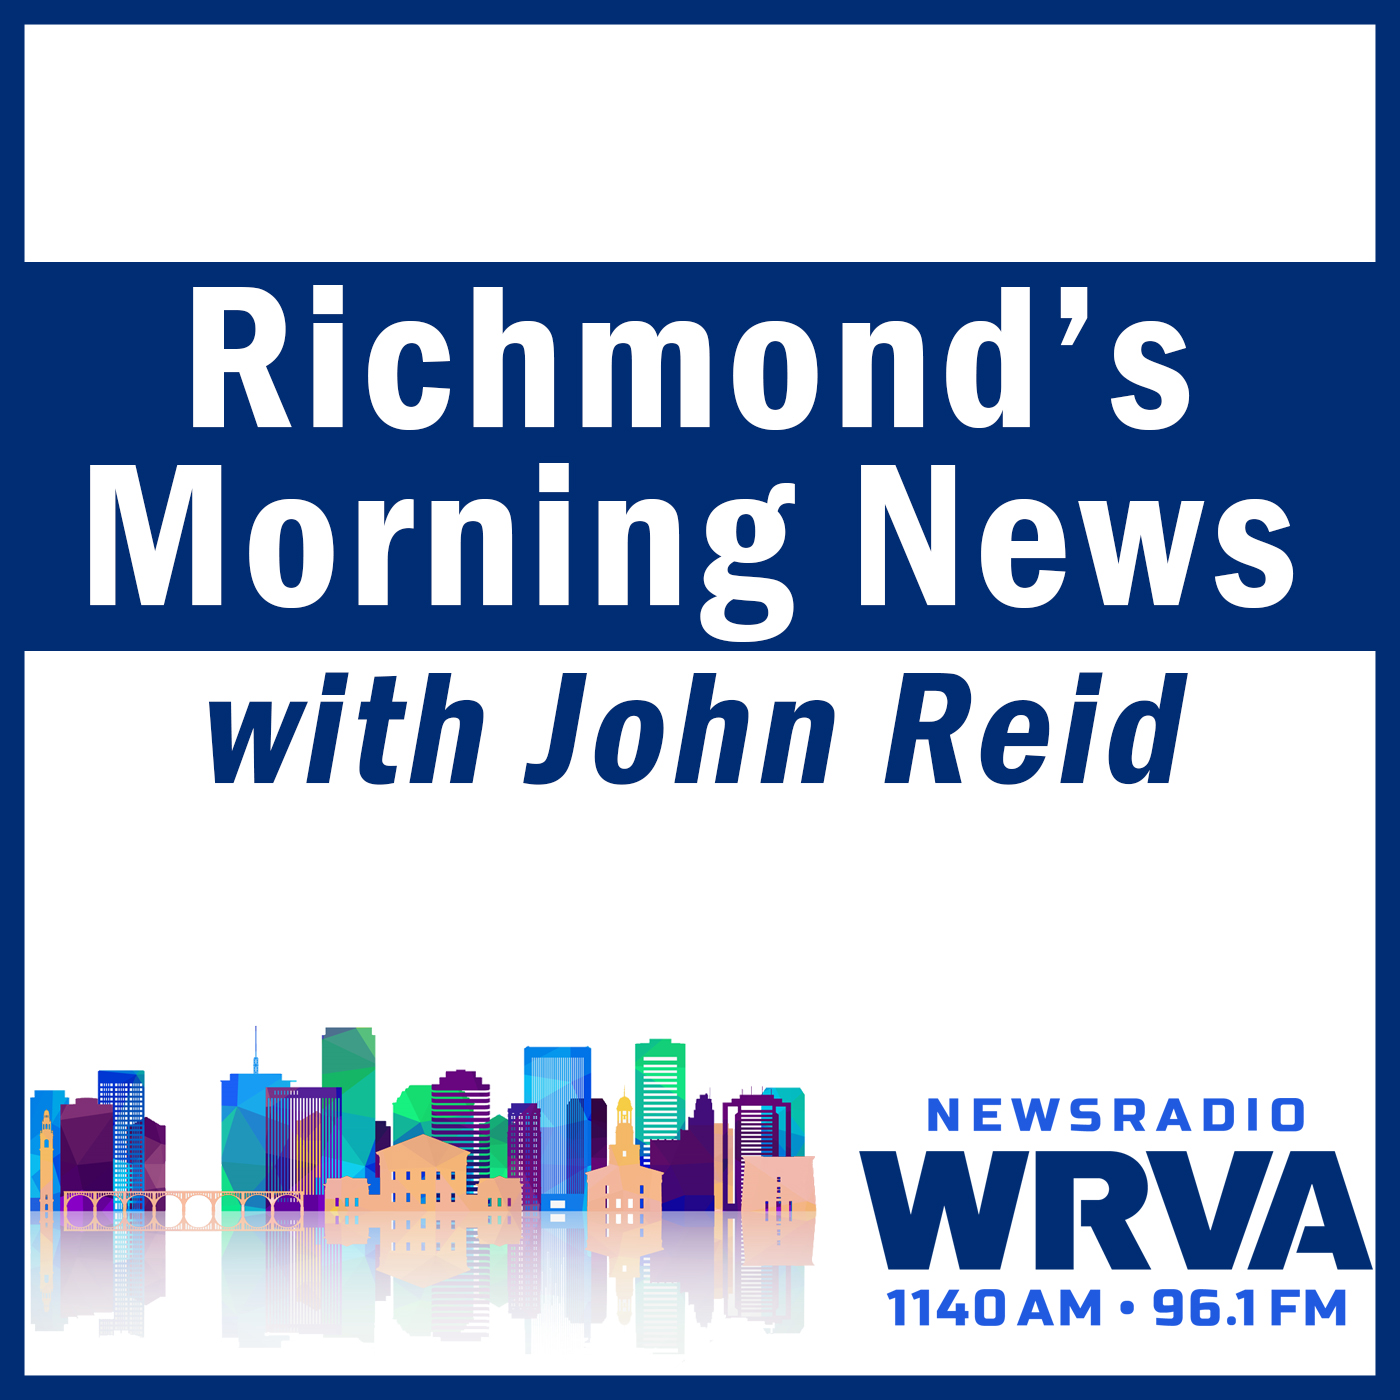 Richmond's Morning News